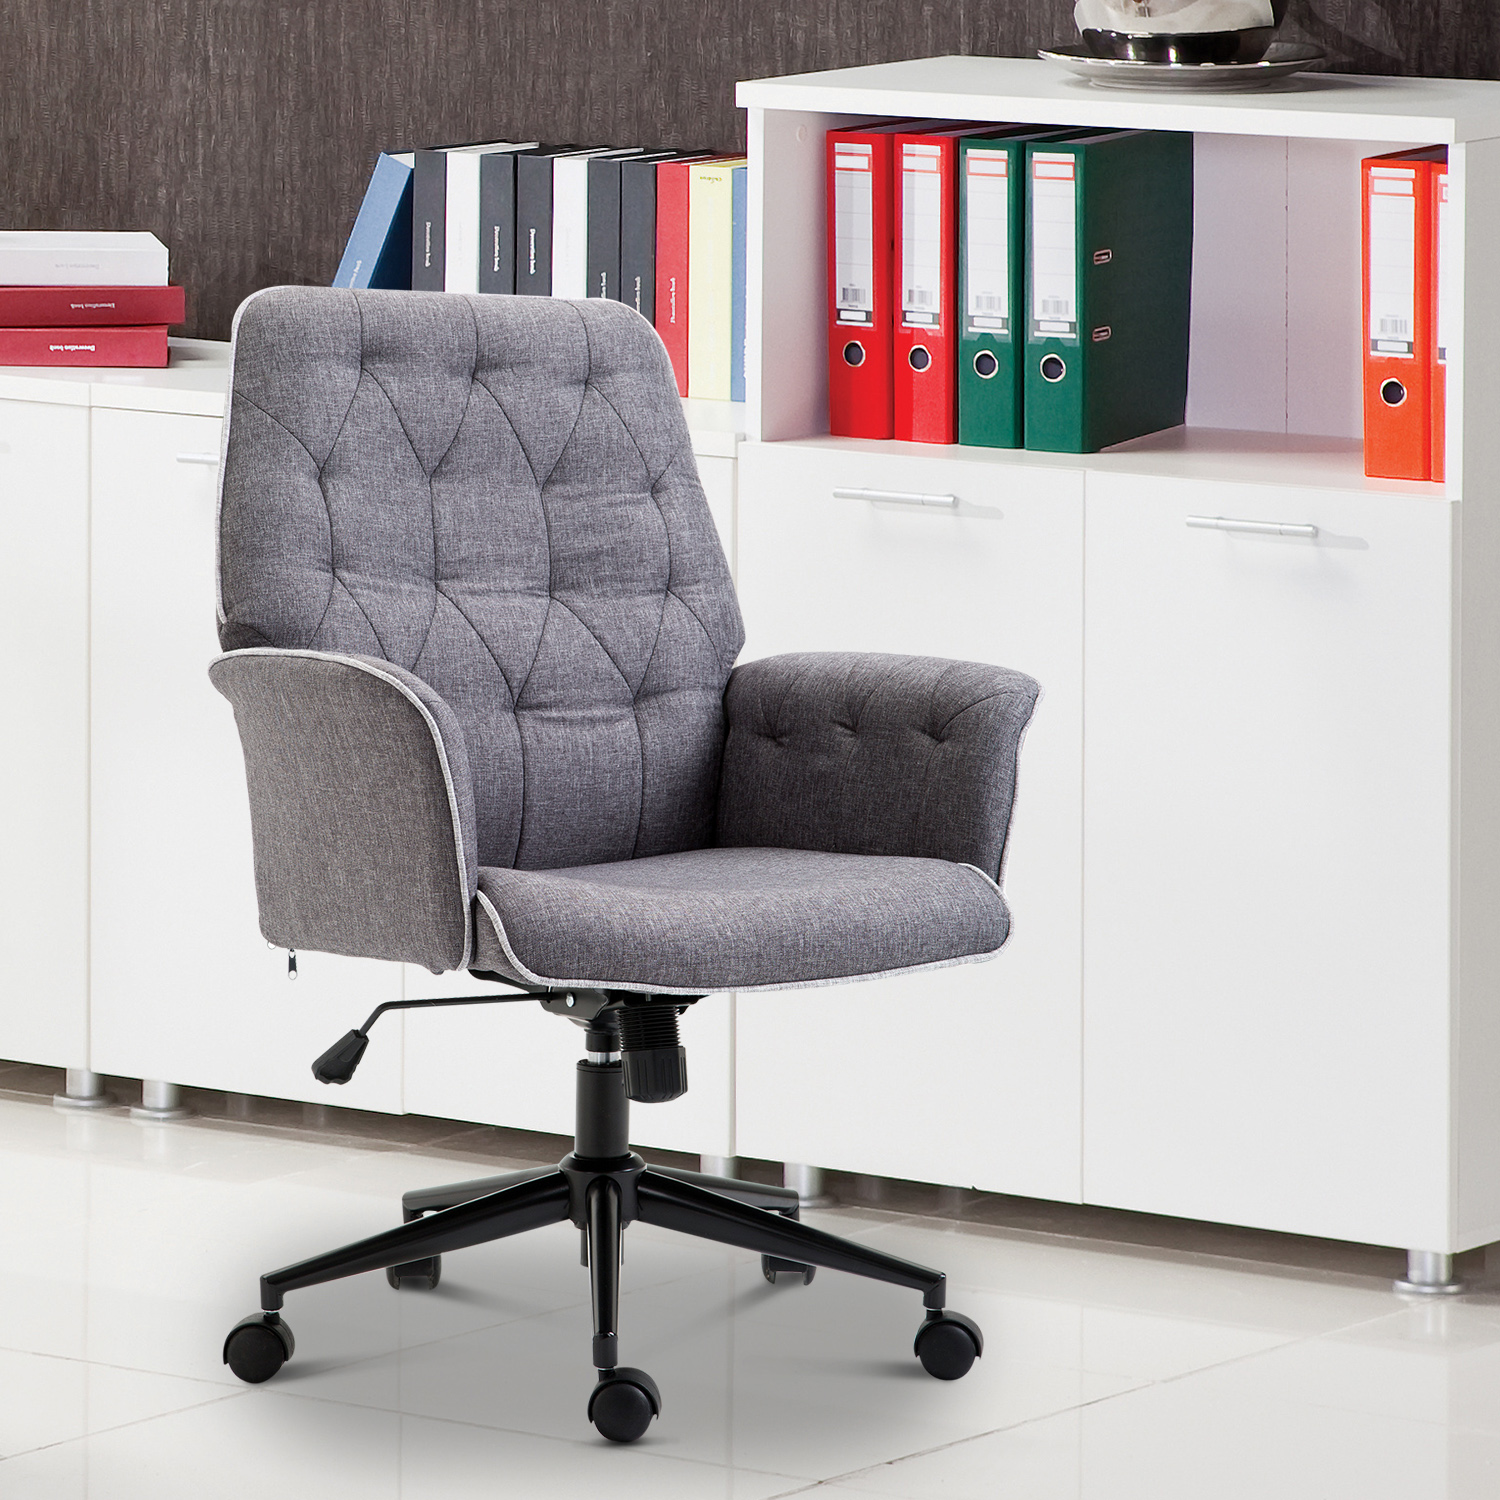 Homcom Modern Tufted Home Office Chair Executive Seat Upholstered Swivel Ergonomic Office Chair Desk Chairs Aosom